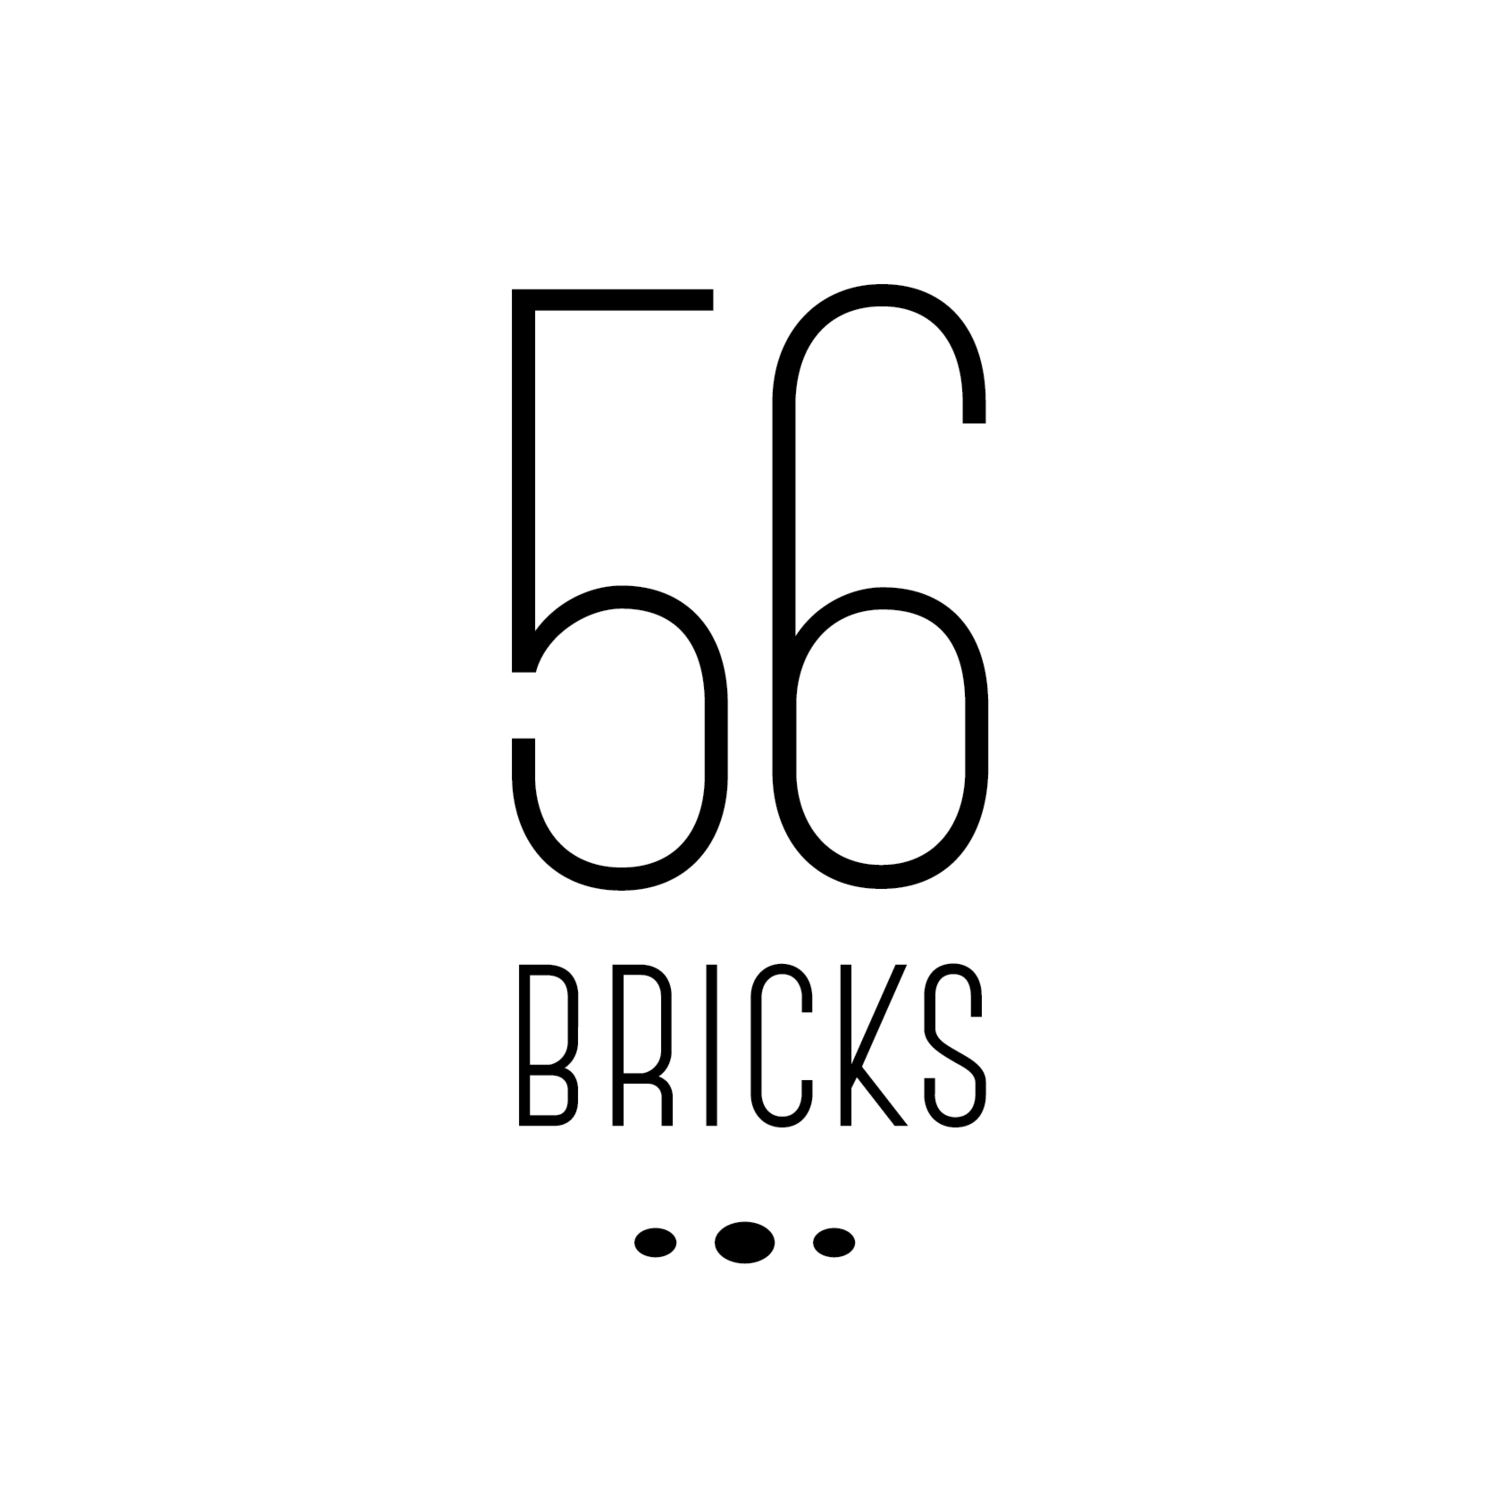 56 Bricks | RNB | HIP-HOP | FUNCTIONS | CHAPEL STREET